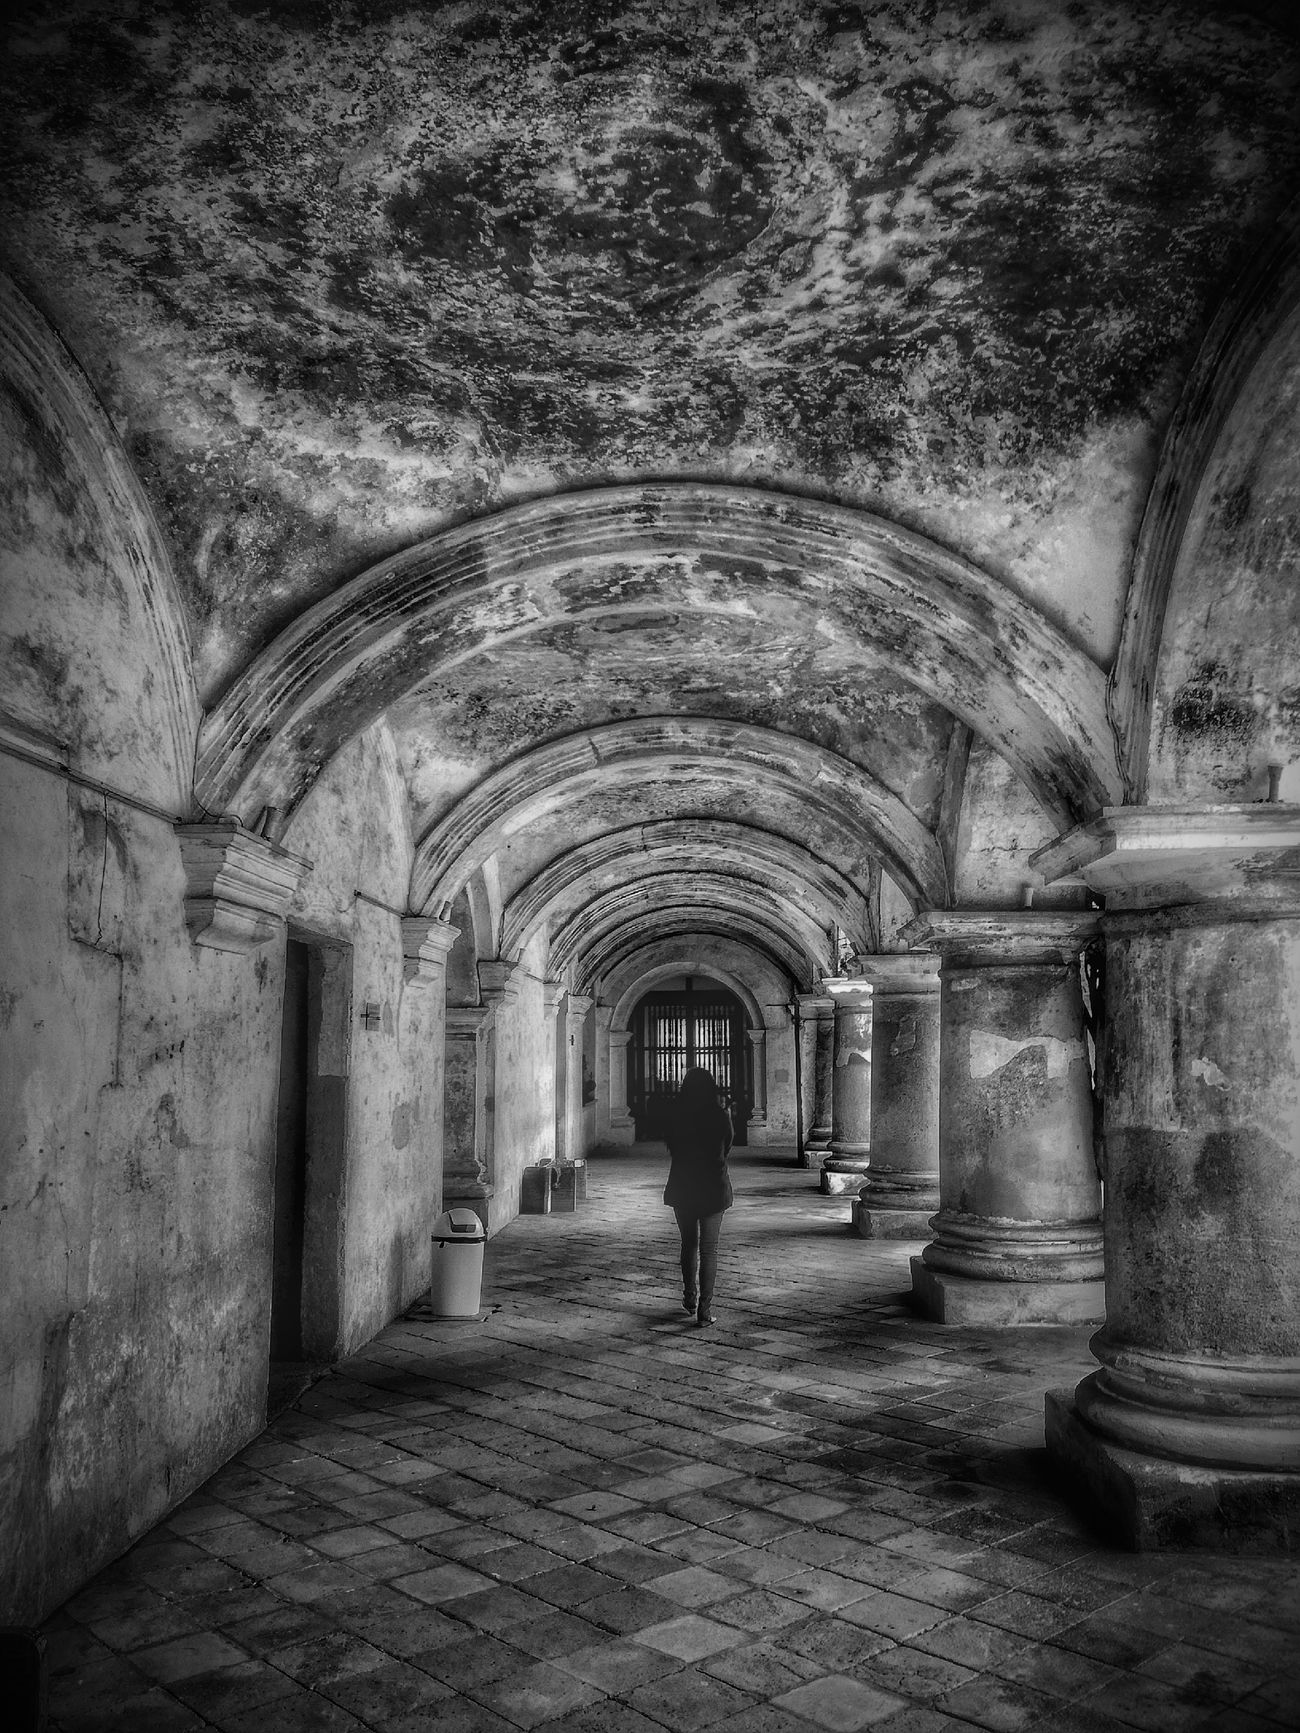 Arch The Way Forward Indoors  One Person Tunnel Architecture Woman Of EyeEm Woman Walking Black & White Photography Black & White Black And White Collection  MonochromePhotography Monocrome Design Black And White Monochrome Popular Photos Old Ruin Old House Old Architecture One Woman Only Model Photography Model Girl Best Shots EyeEm Best Of EyeEm Walking Alone...